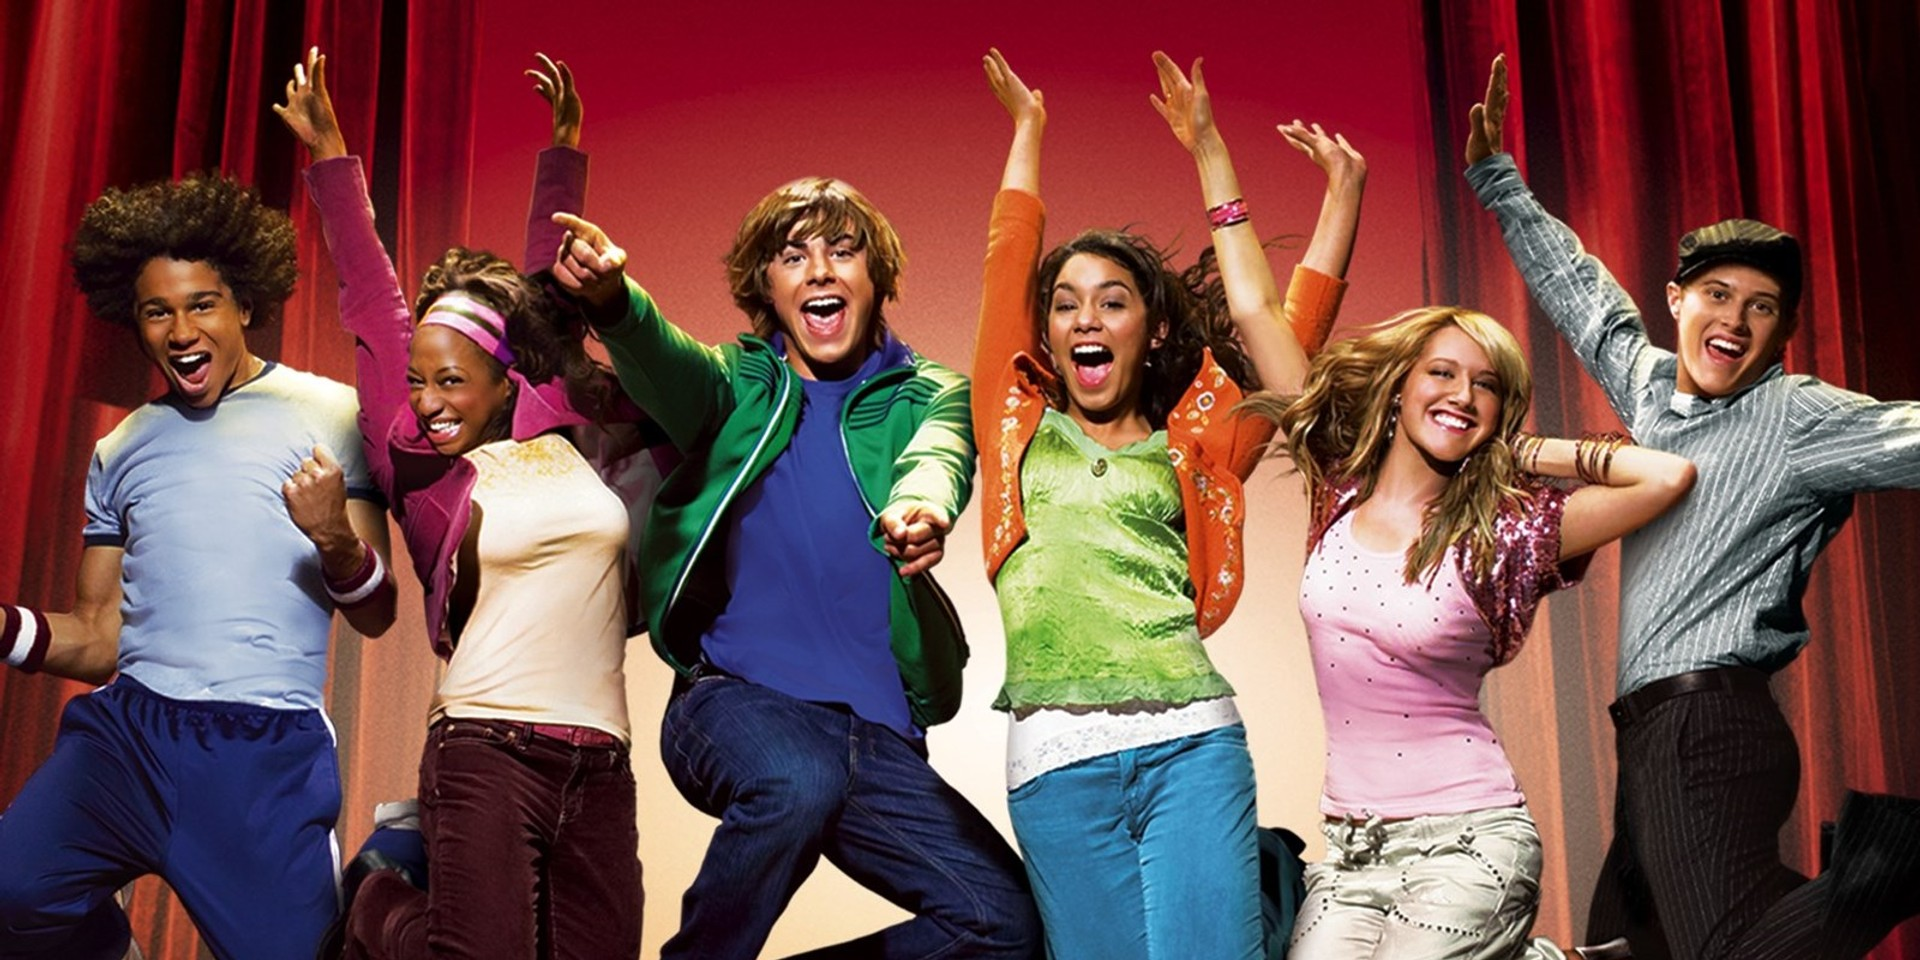 15 songs we love from High School Musical